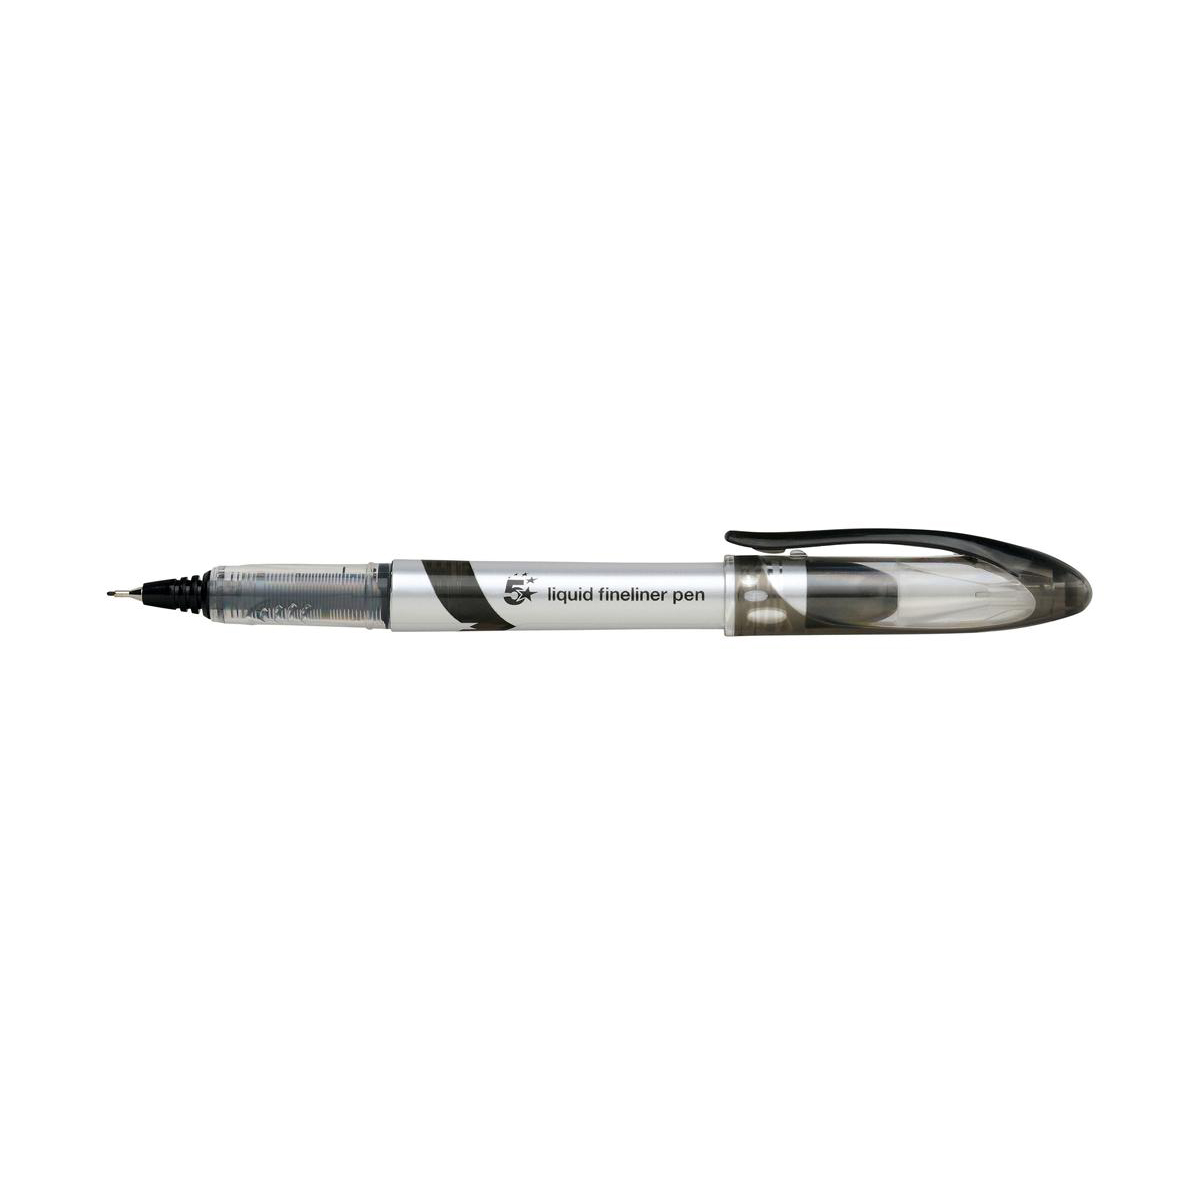 Image for 5 Star Elite Fineliner Pen Liquid 0.8mm Tip 0.4mm Line Black [Pack 12]